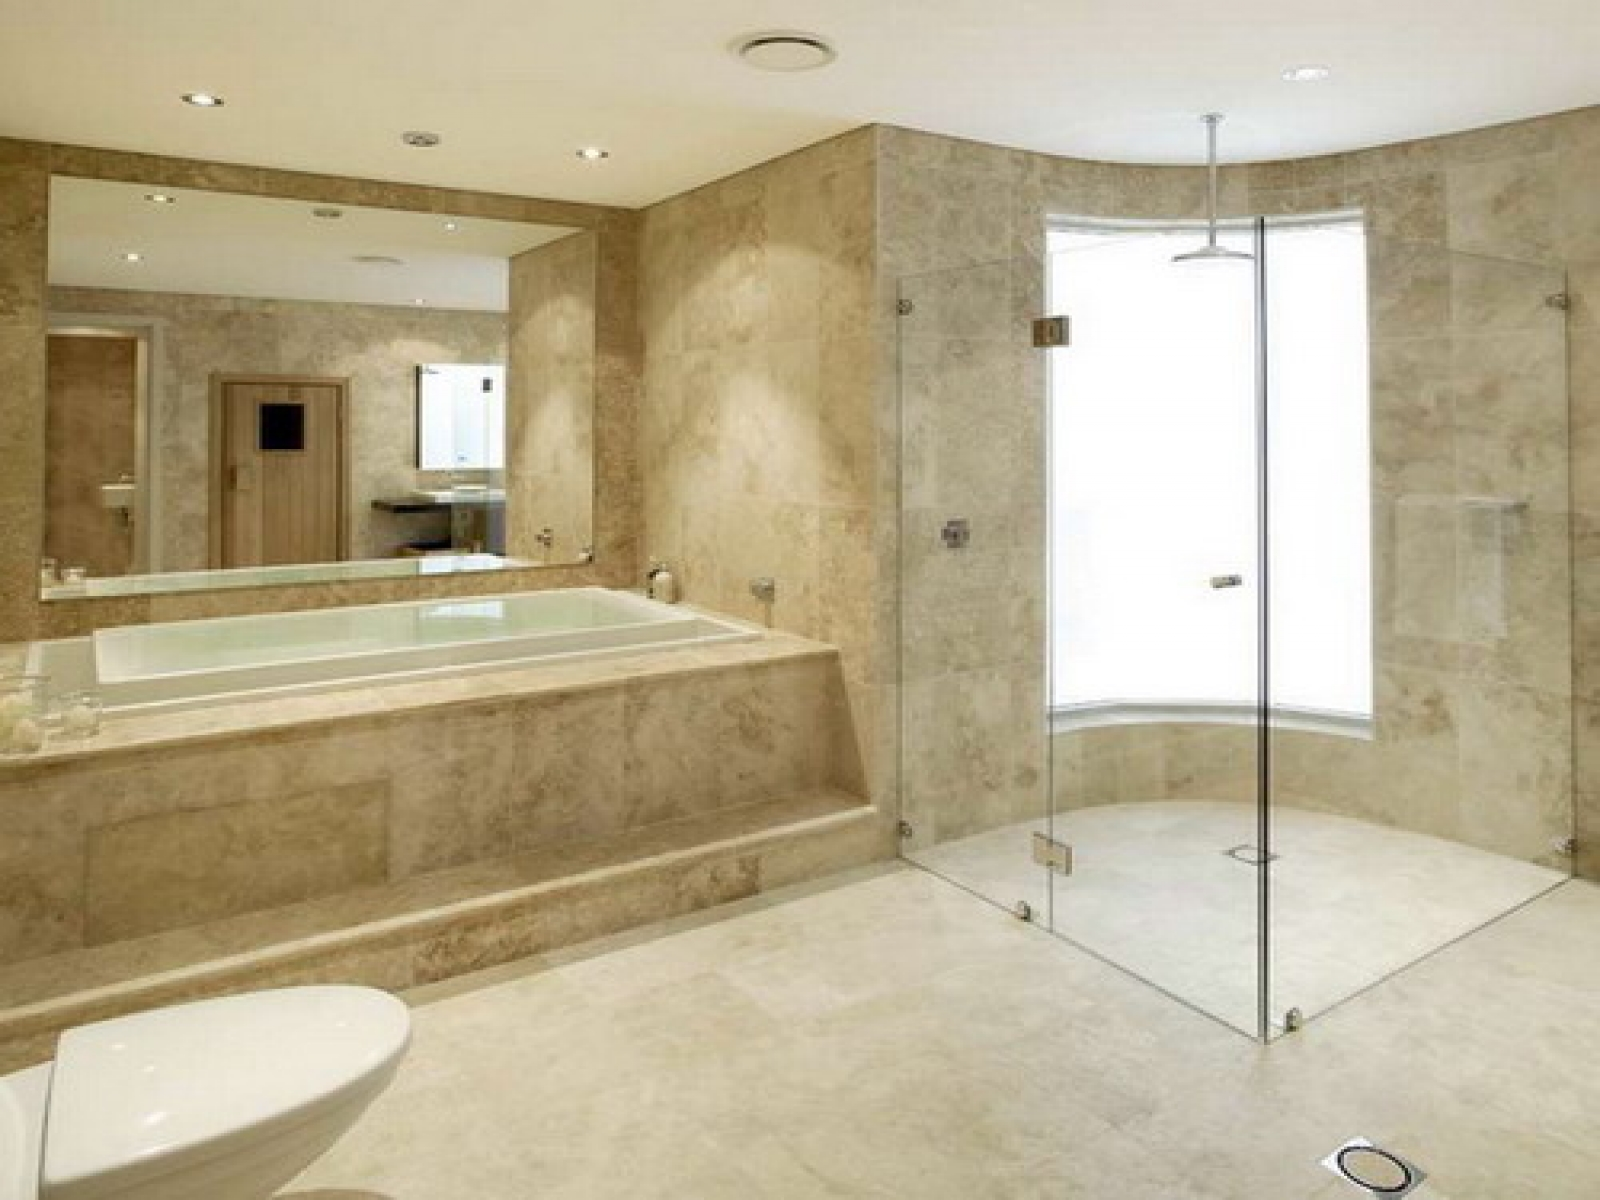 20 amazing pictures and ideas of travertine shower tile for Placa de marmol travertino